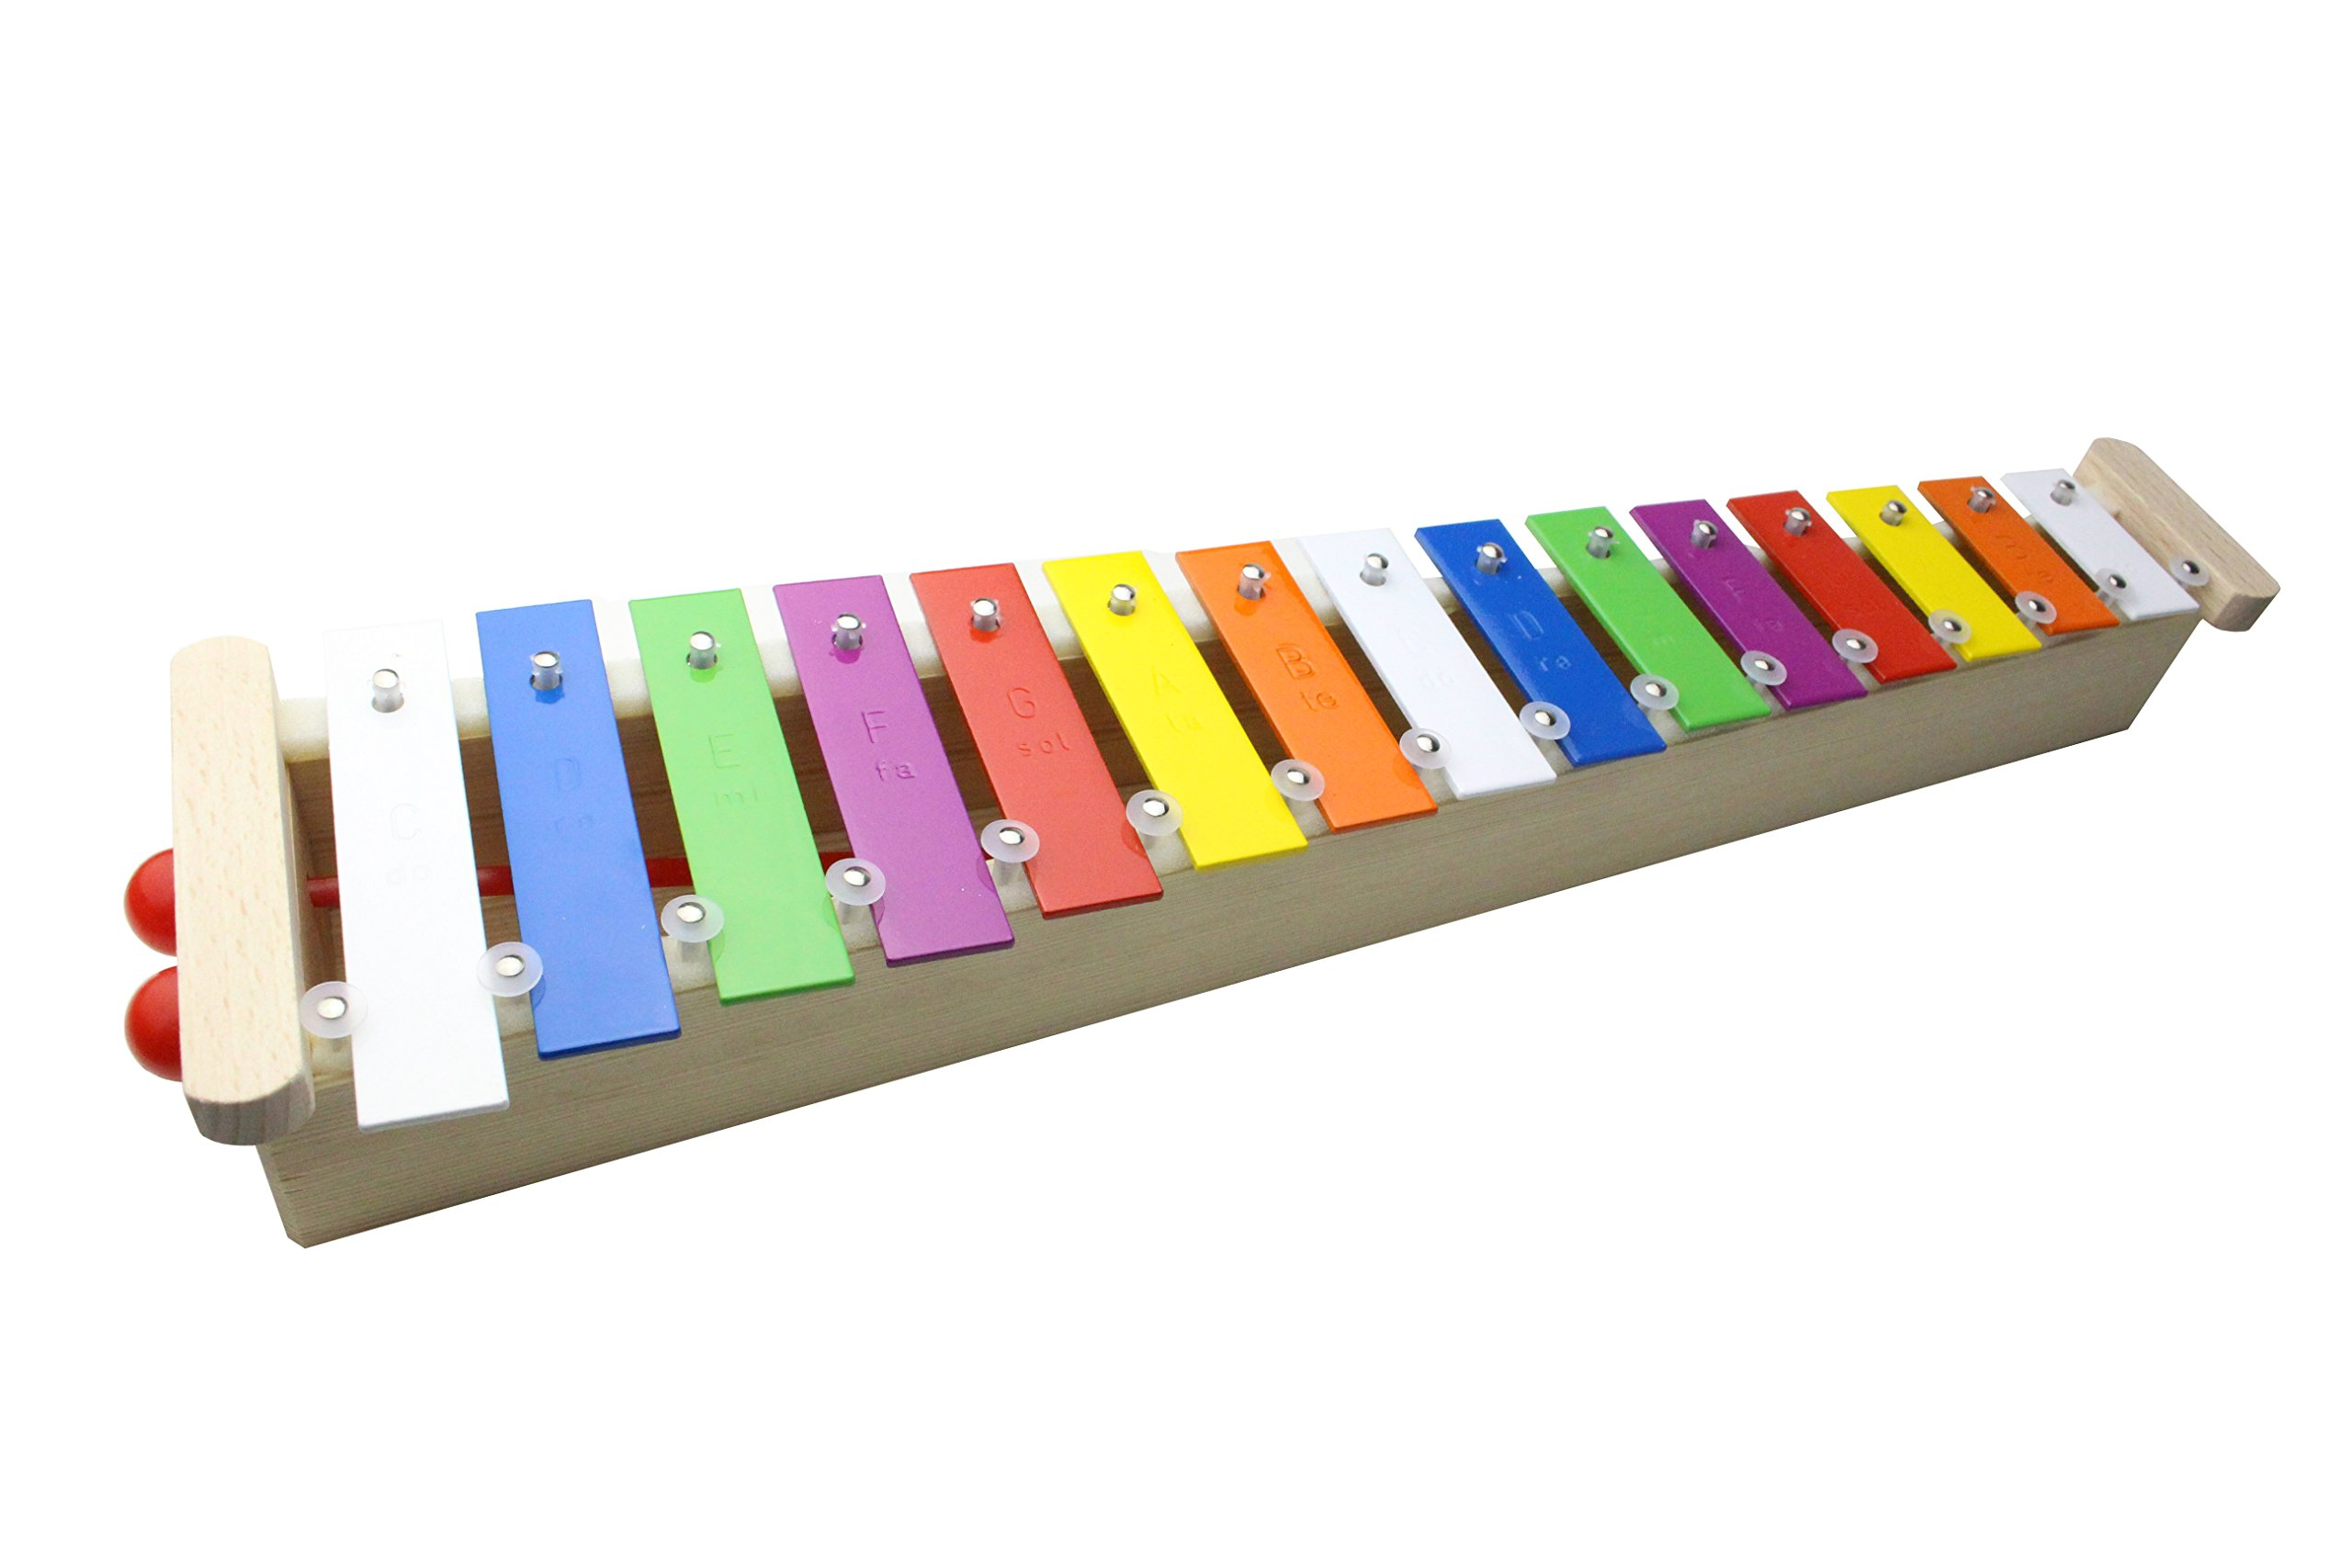 ProKussion 15 Key Soprano Glockenspiel with Wooden Resonating Chamber and Removable Keys (6 Extra Keys and 4 Beaters)